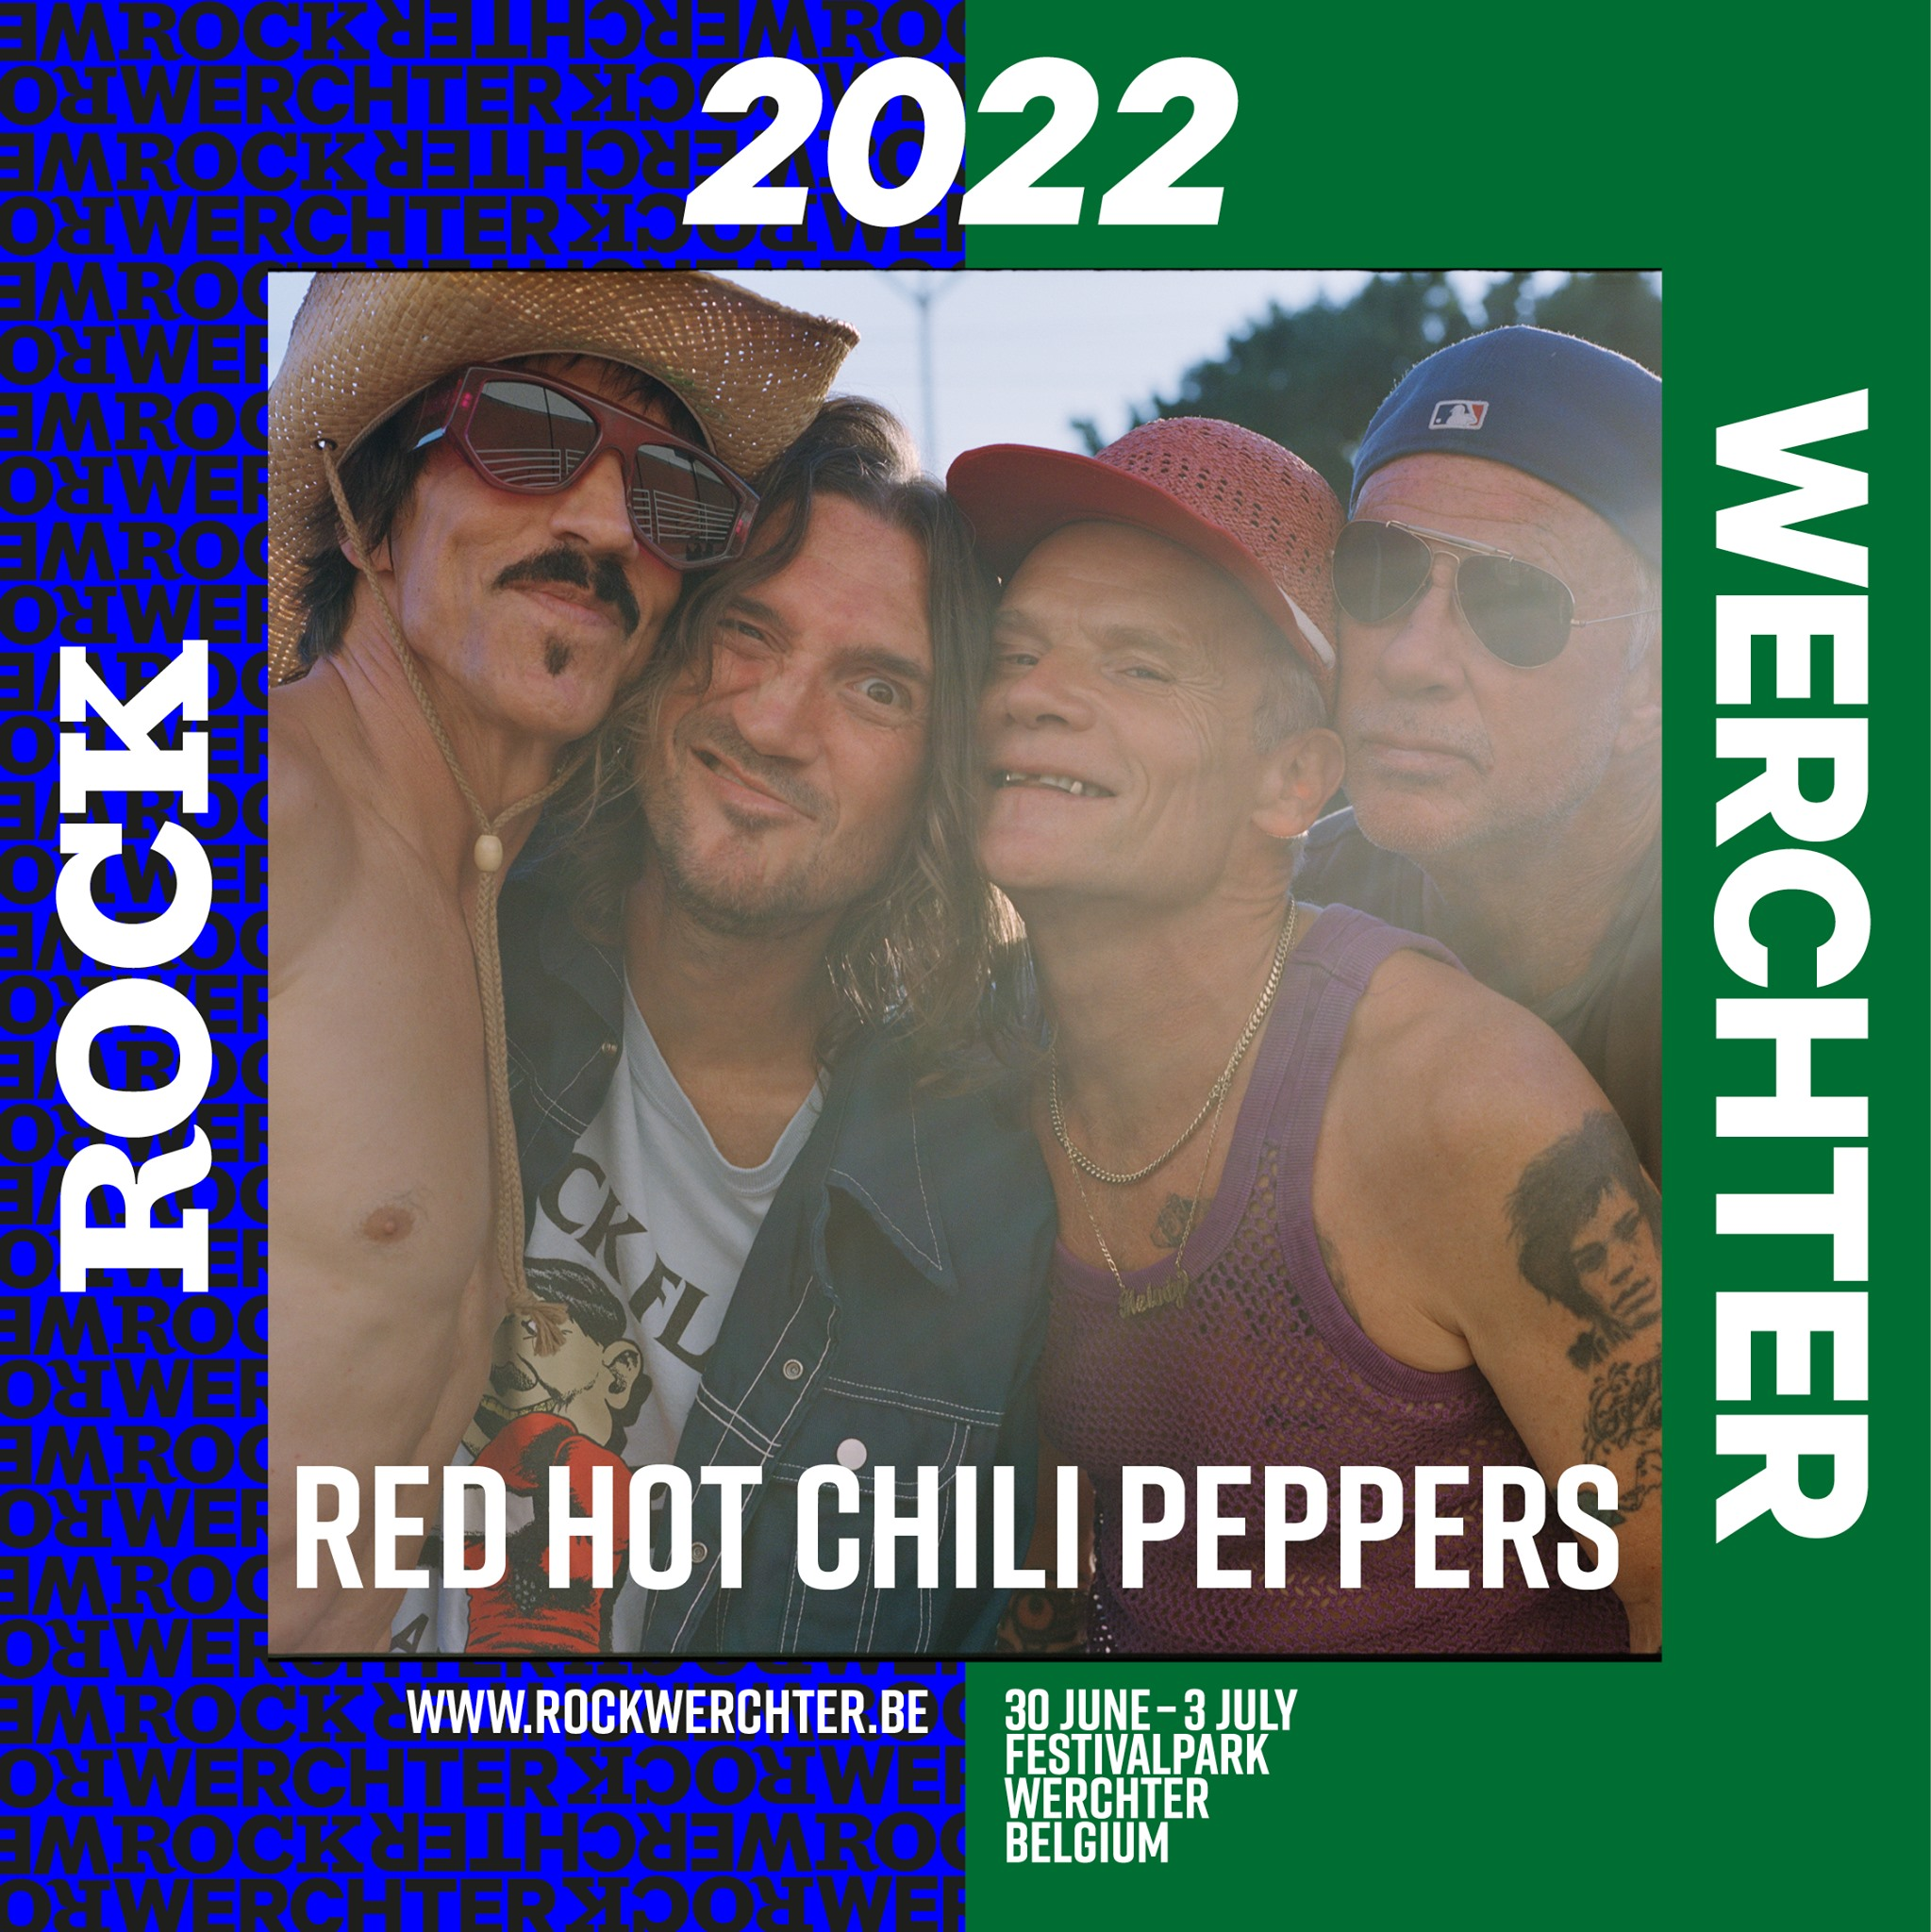 Red Hot Chili Peppers, al Rock Werchter 2022